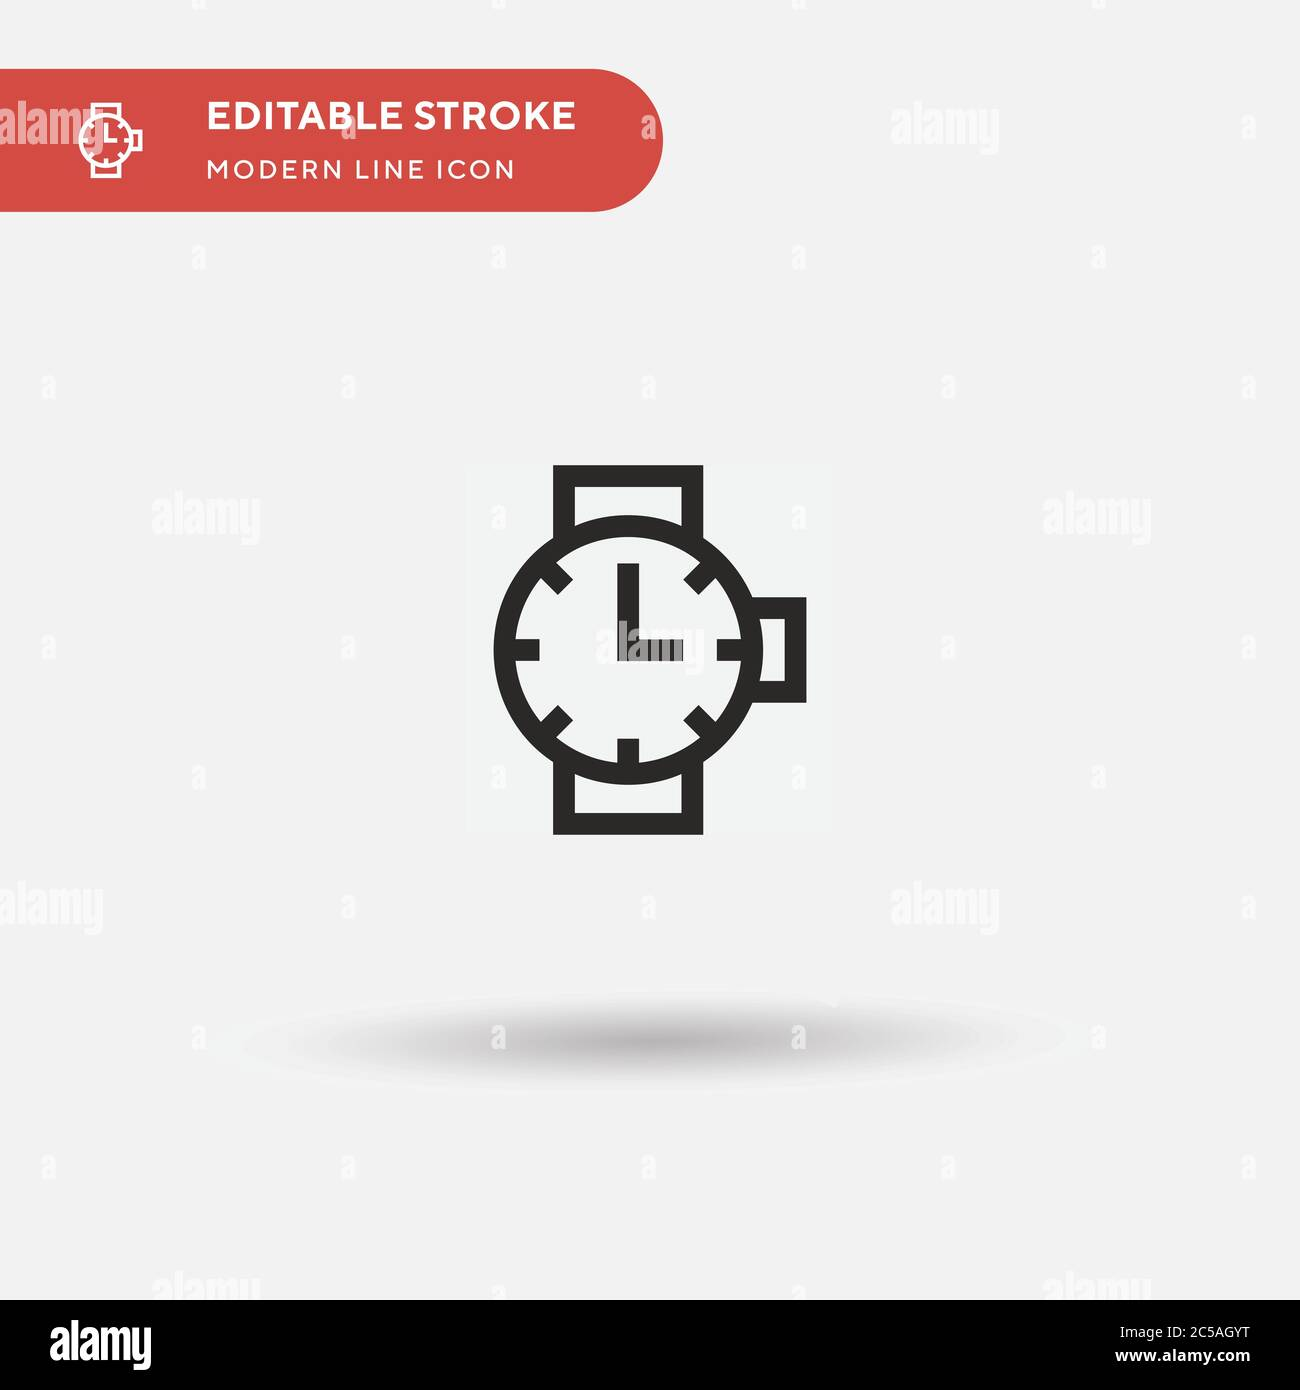 Watch Simple Vector Icon Illustration Symbol Design Template For Web Mobile Ui Element Perfect Color Modern Pictogram On Editable Stroke Watch Icons For Your Business Project Stock Vector Image Art